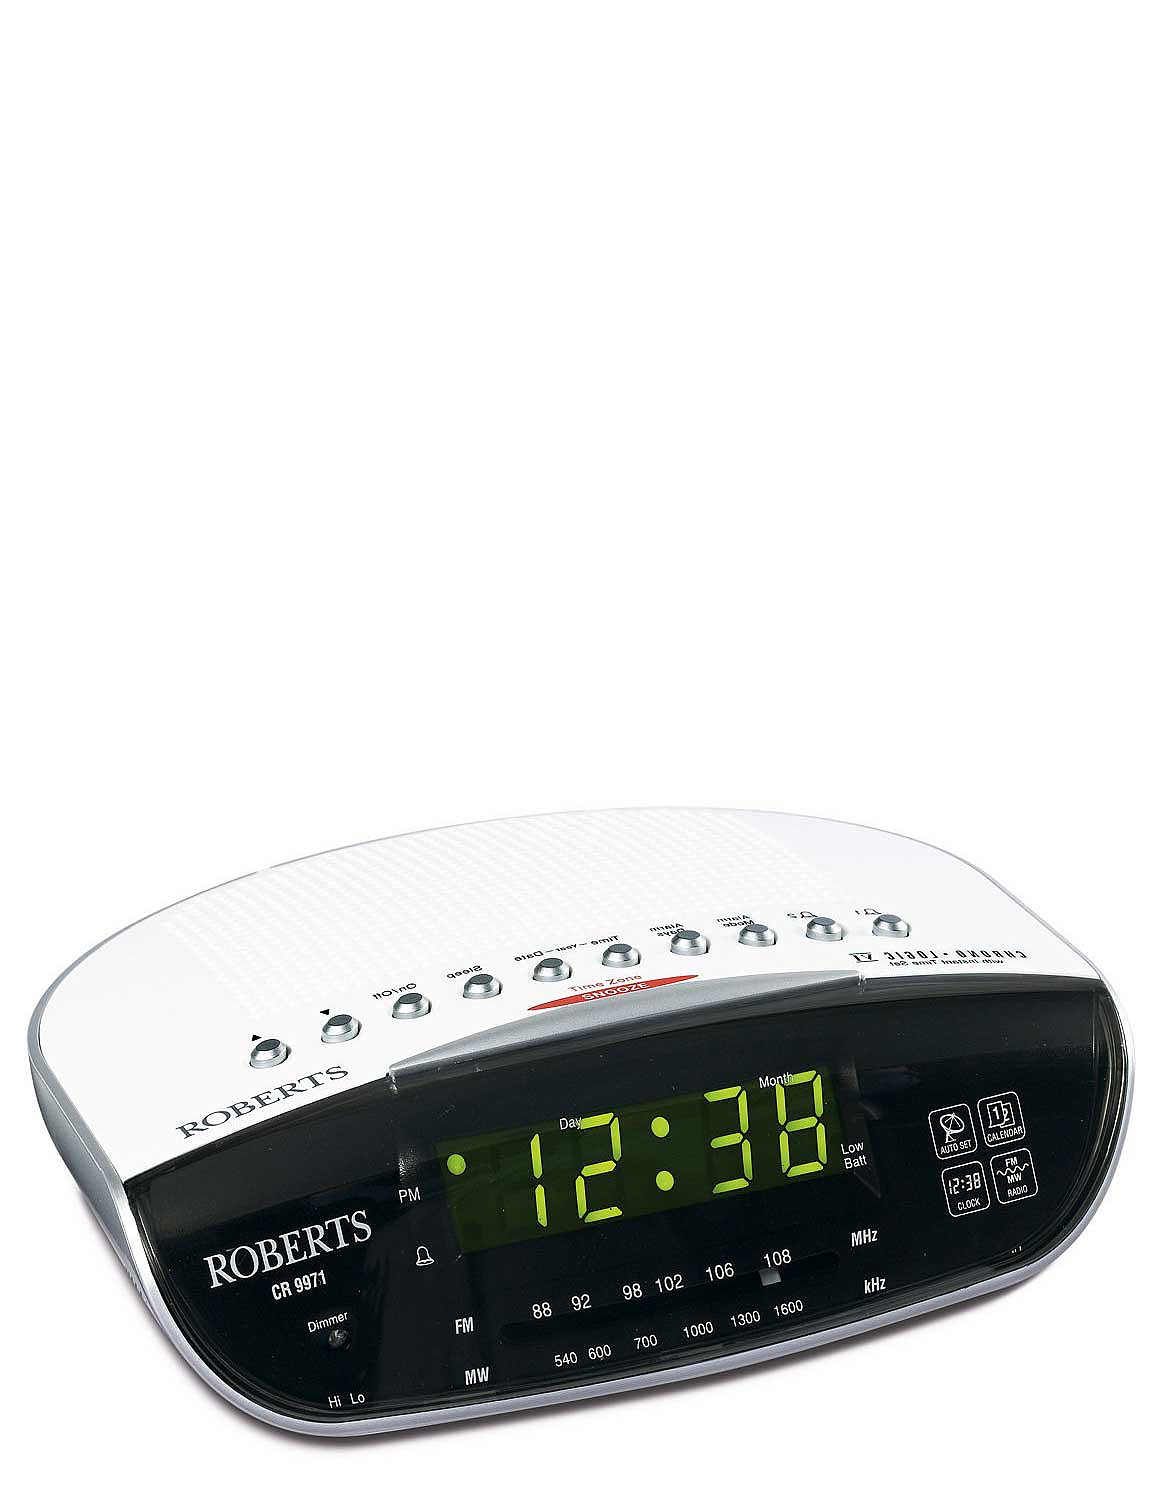 roberts radio controlled dual alarm clock home clocks. Black Bedroom Furniture Sets. Home Design Ideas